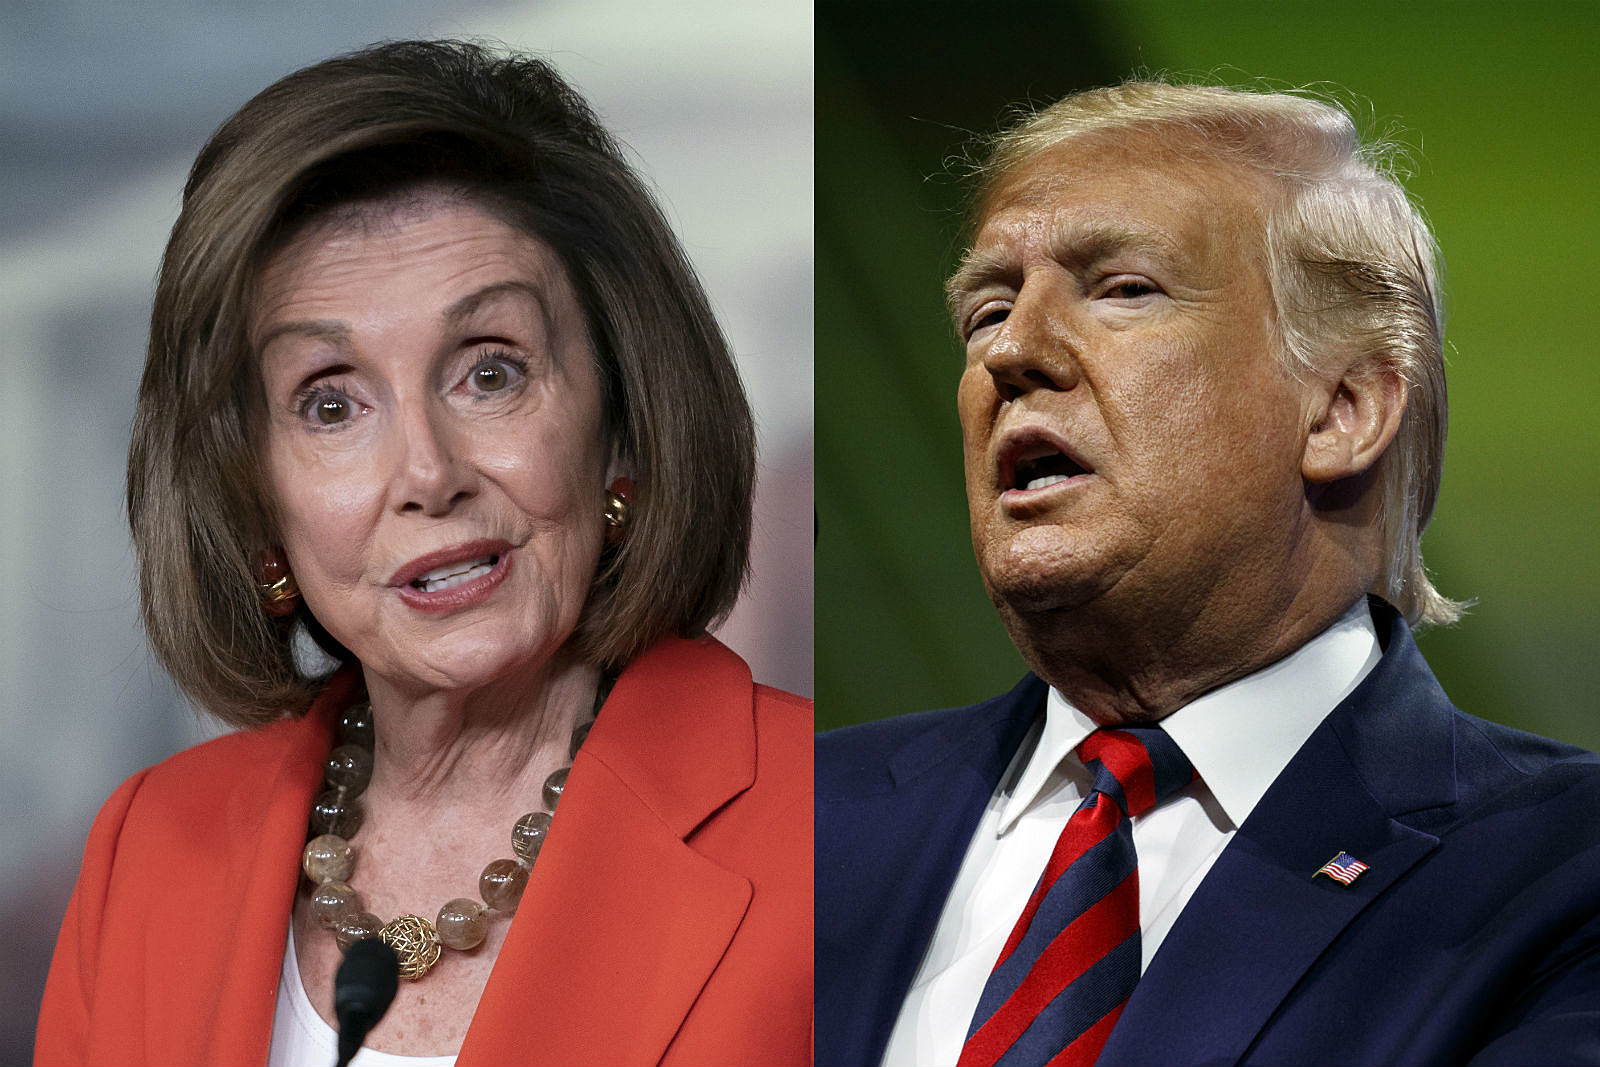 House approves impeachment inquiry but a Democrat from NJ votes no